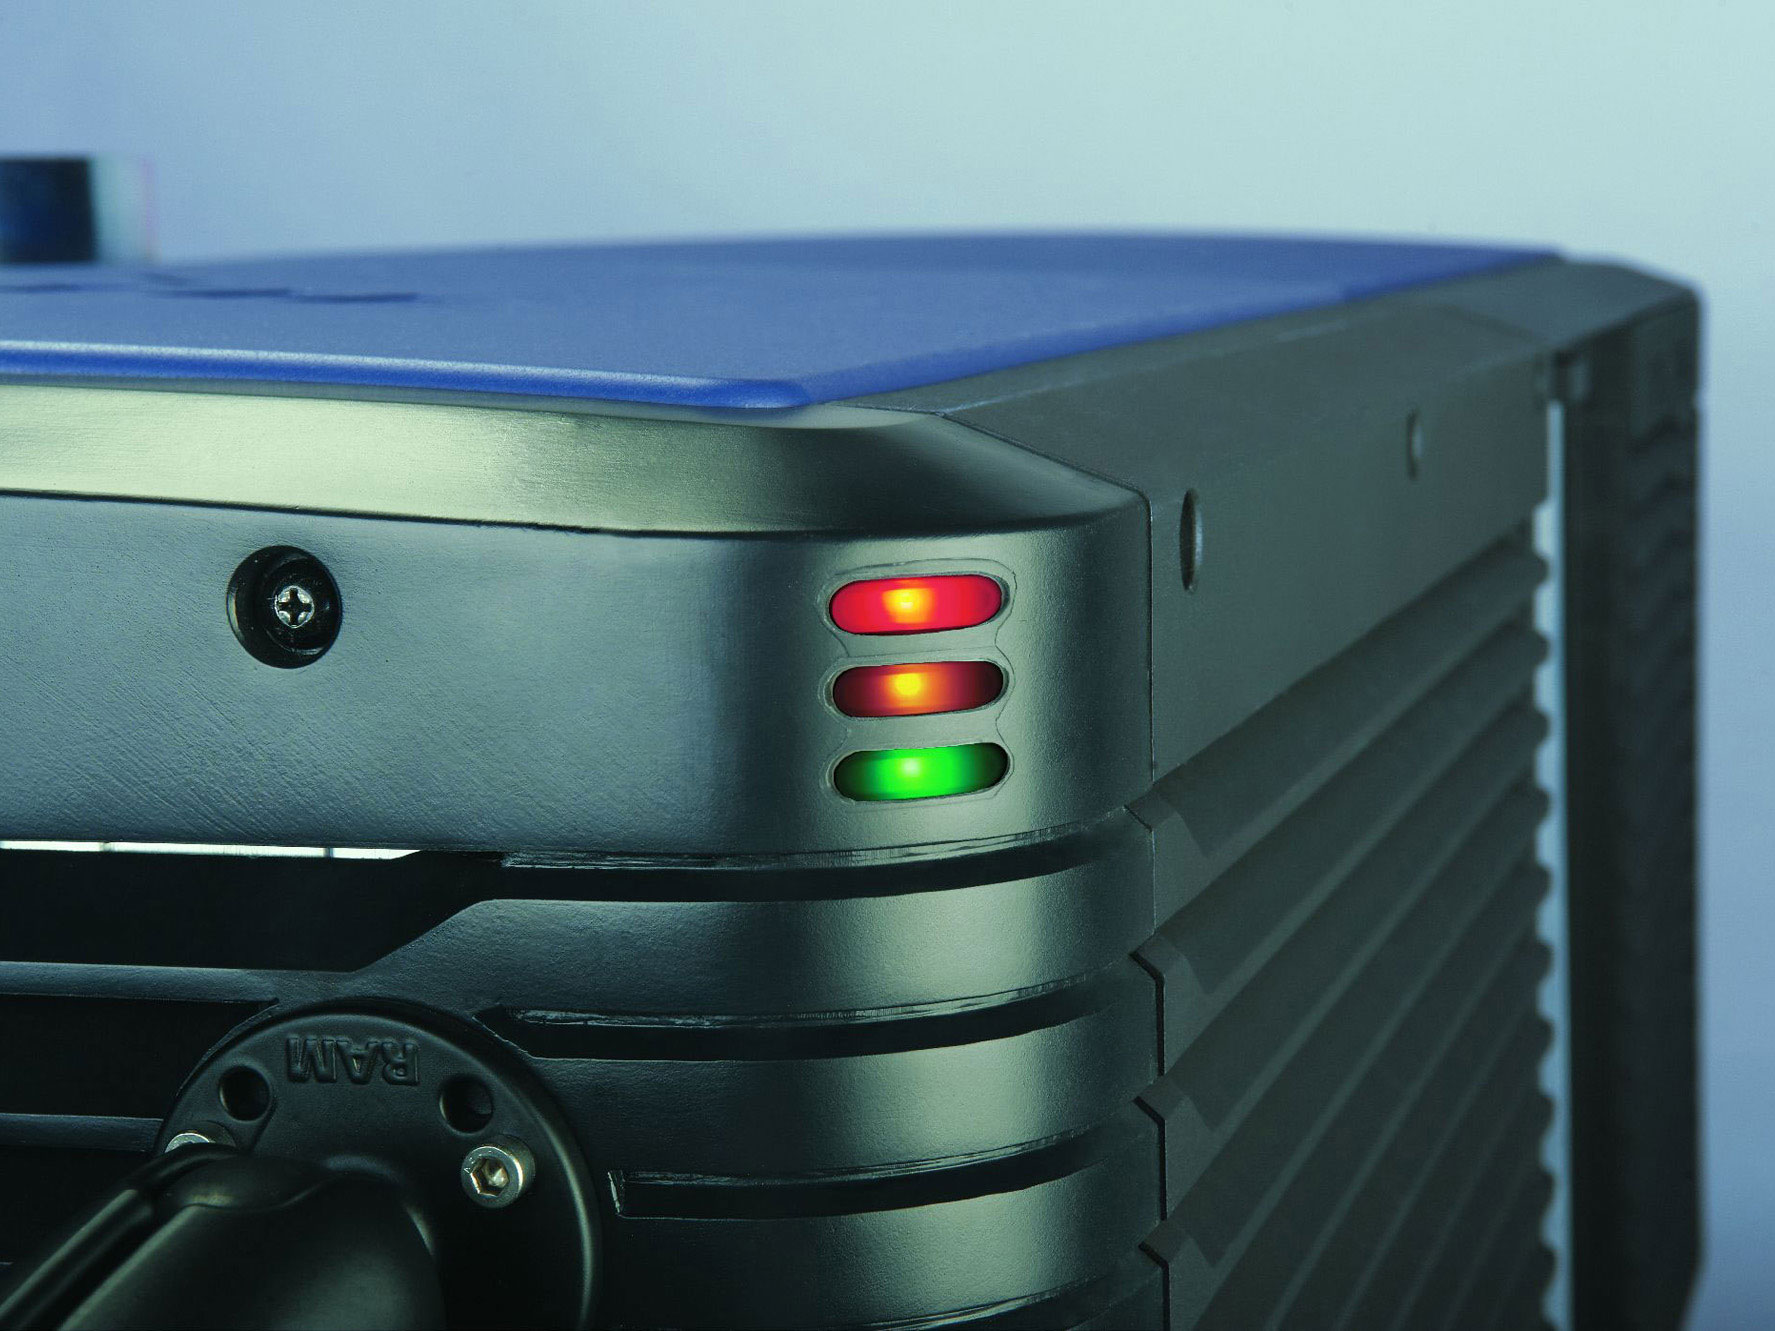 /globalassets/.catalog/products/images/christie-cp2230/gallery/christie-cp2230-digital-cinema-projector-image5.jpg